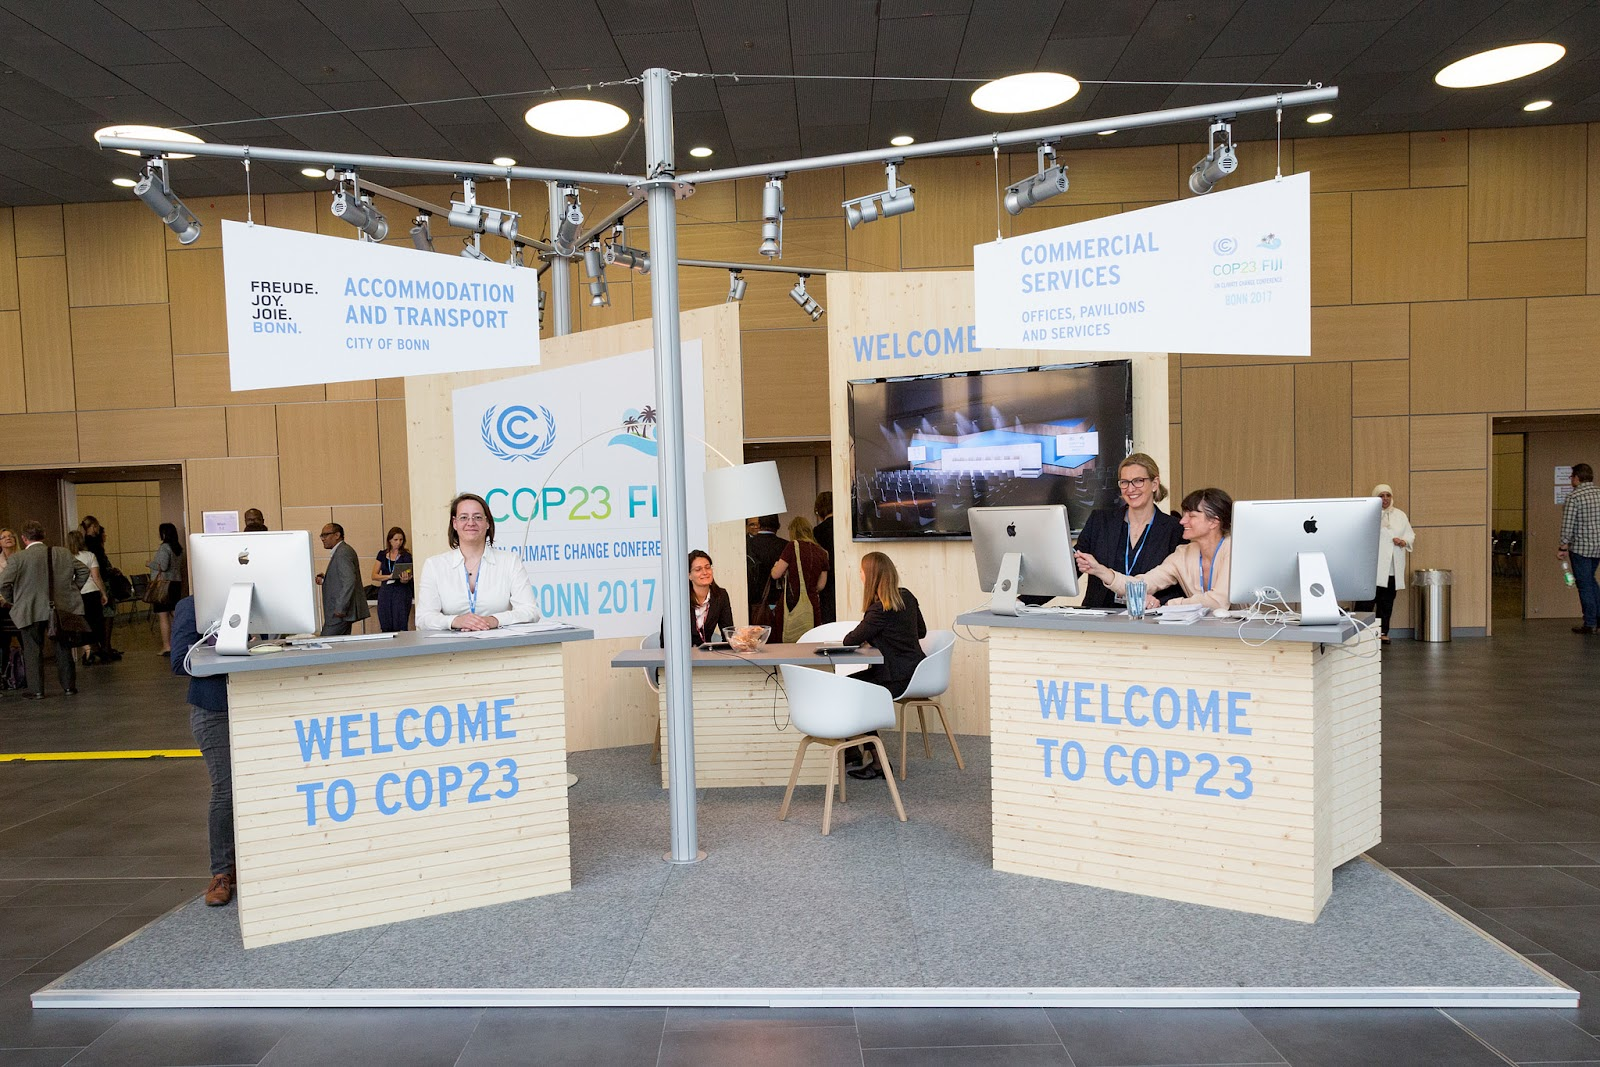 COP23 information booth by UNFCCC.jpg